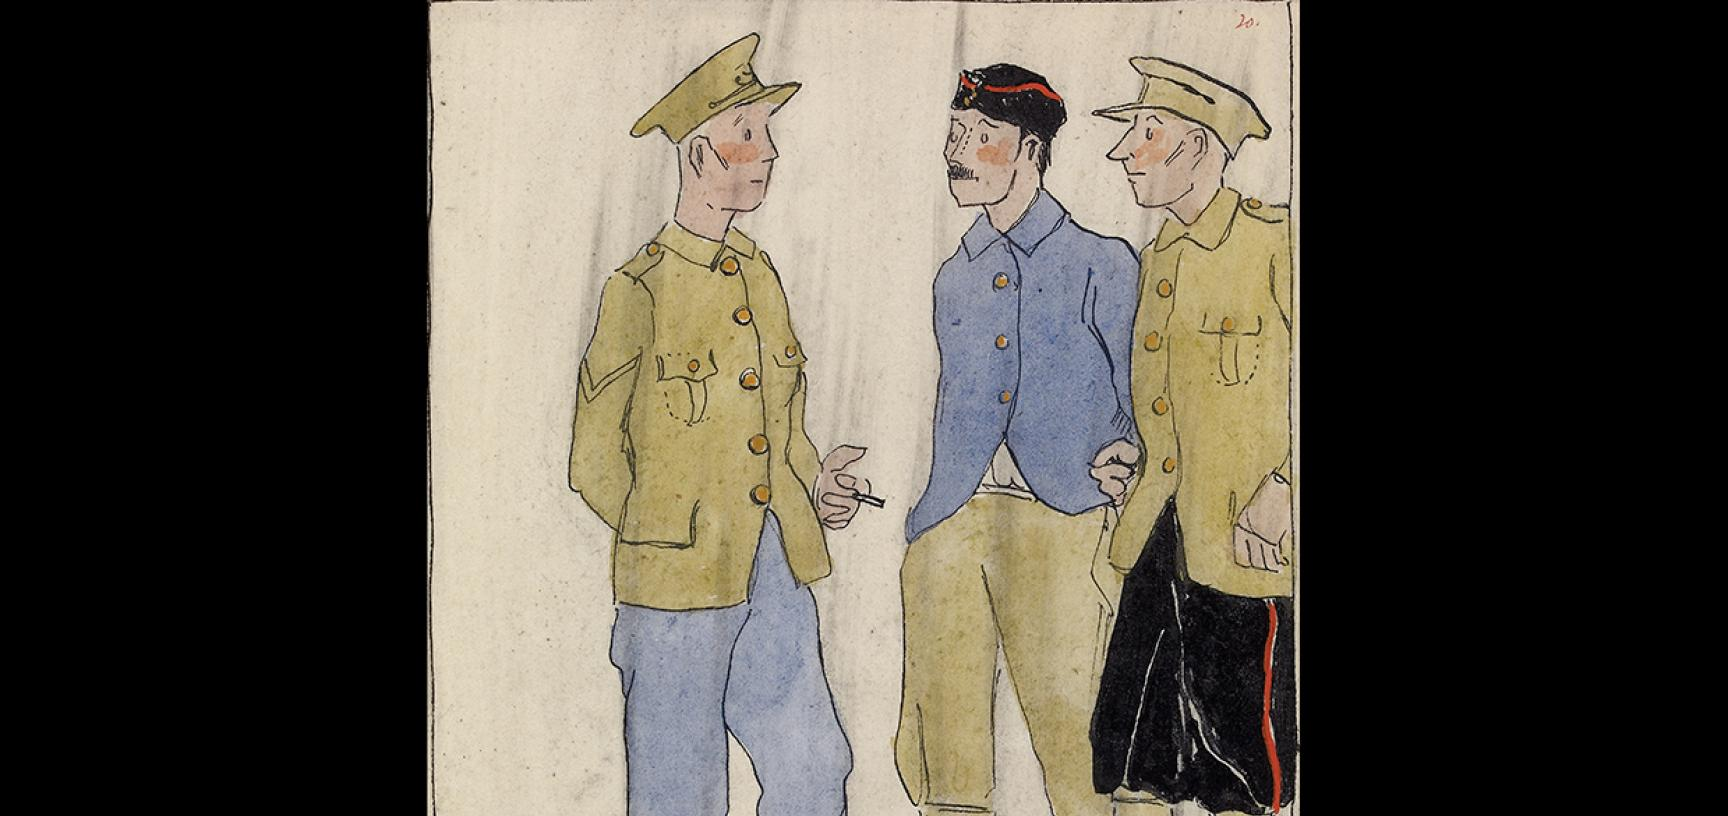 Claud Lovat Fraser,The Encroachment of Khaki and the Favoured Few, 1919 © Ashmolean Museum Presented by Mrs Grace Lovat Fraser (the artist's widow), WA1975.101.50